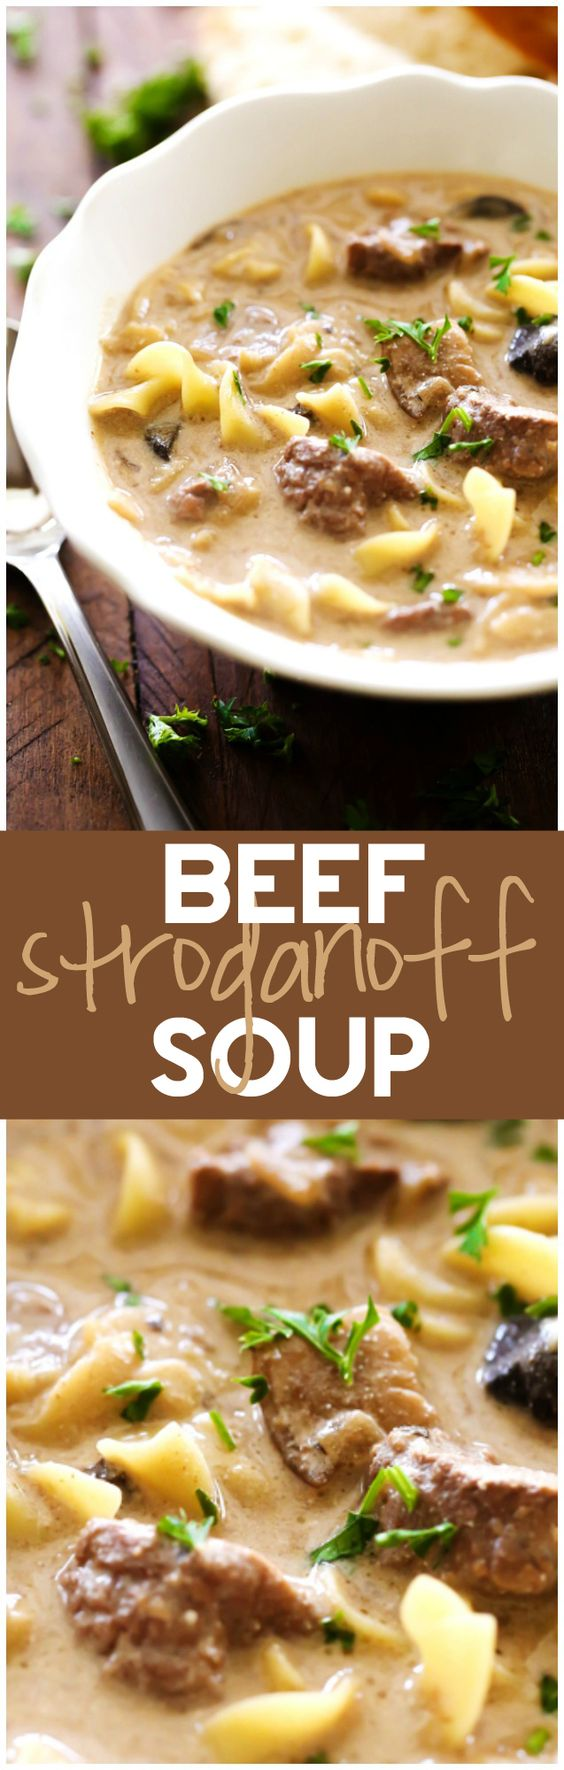 Beef Stroganoff Soup   Recipe   Classic, Soups and It is